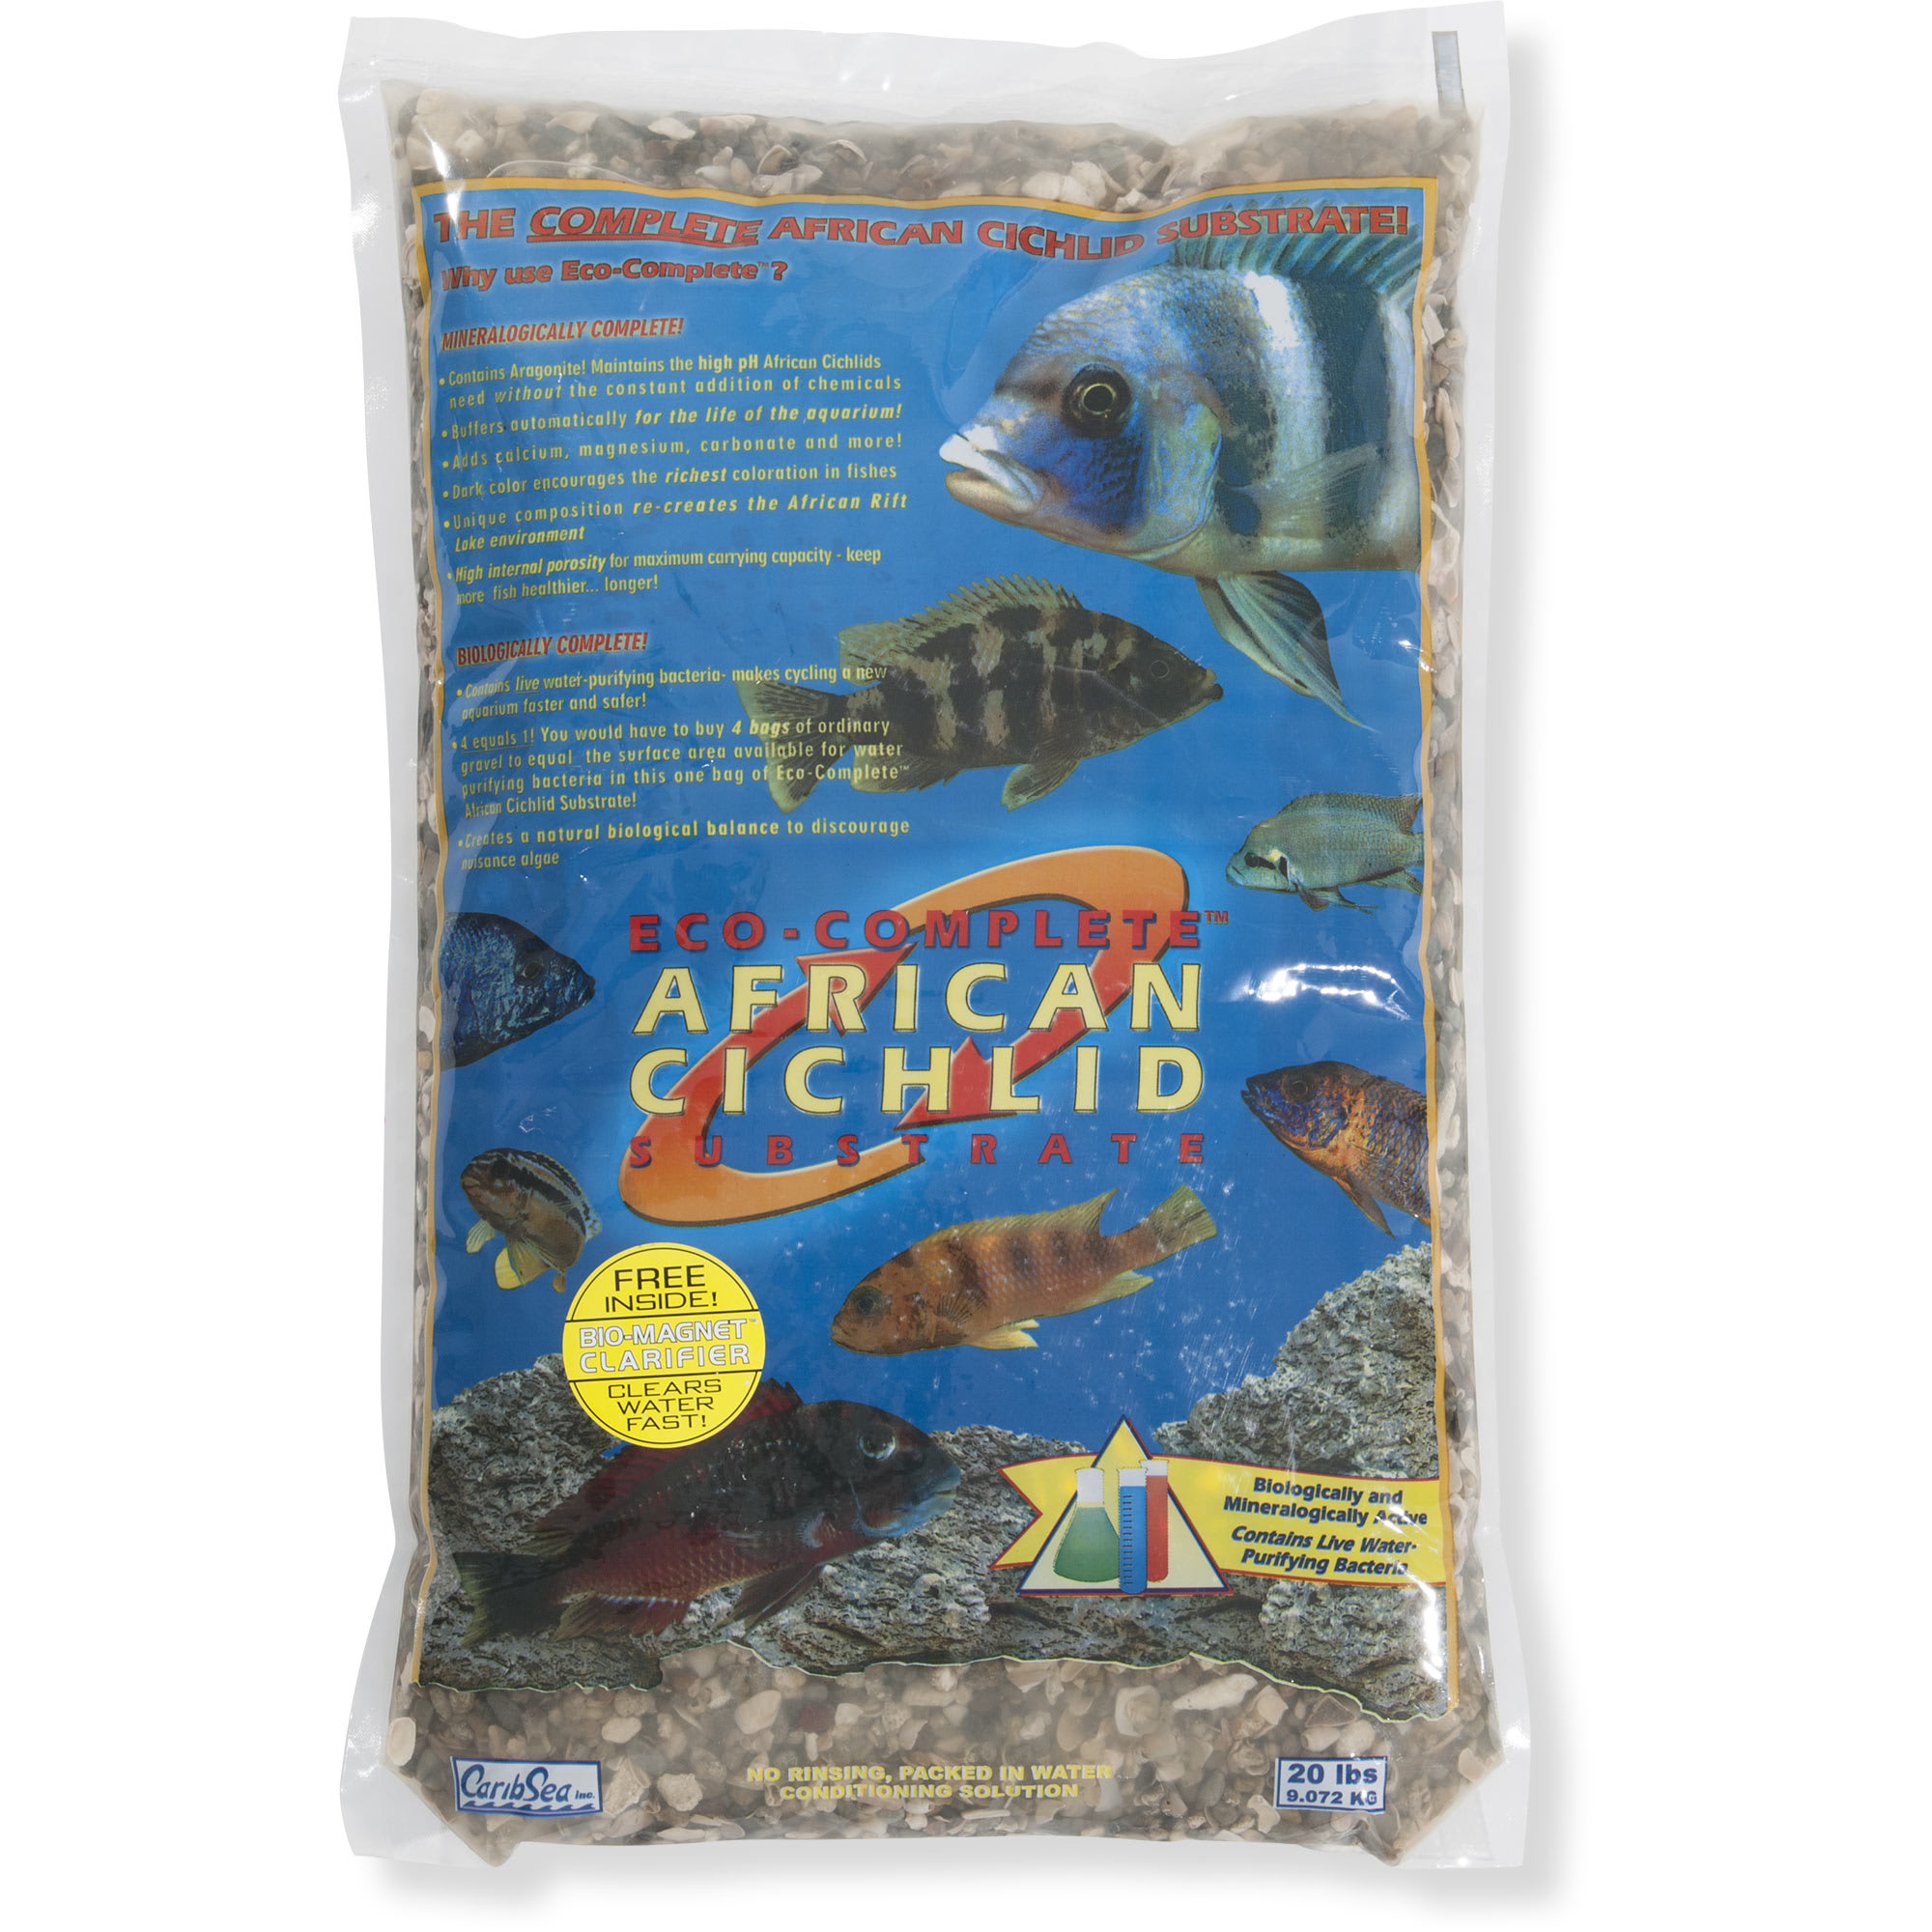 Caribsea Eco Complete African Cichlid Gravel Substrate 20 Lbs Petco